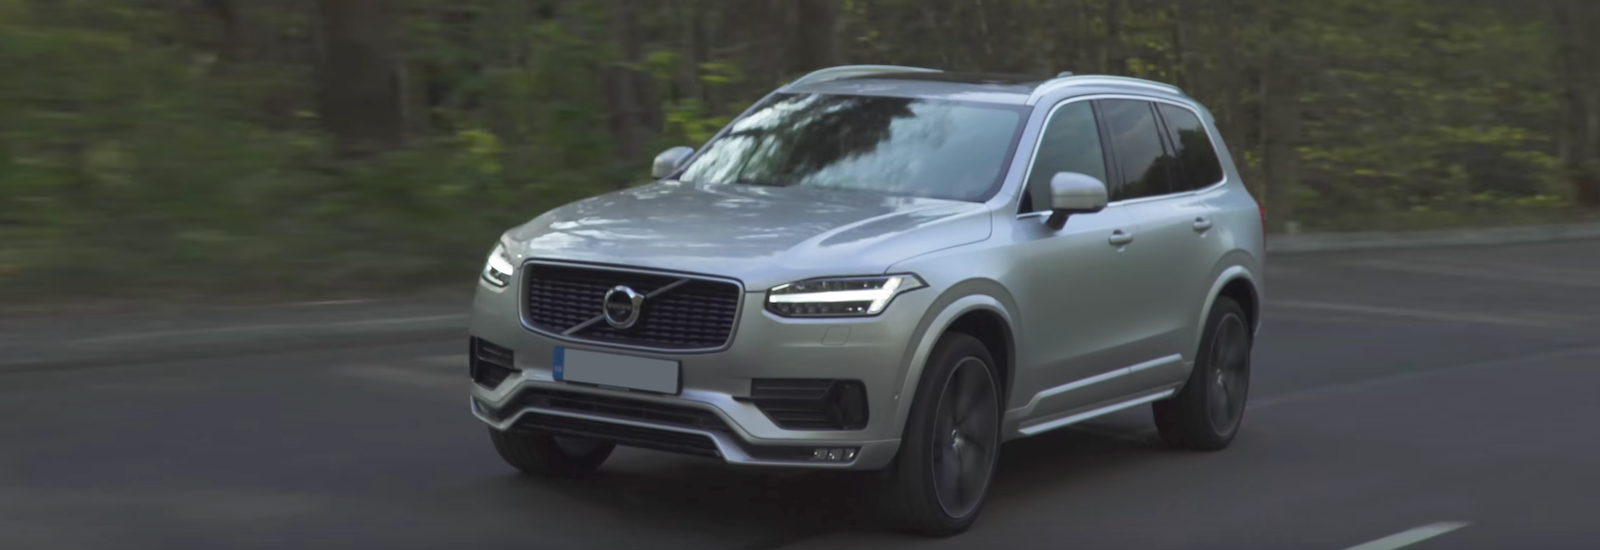 hybrid youtube date gallery all exterior release review new volvo car